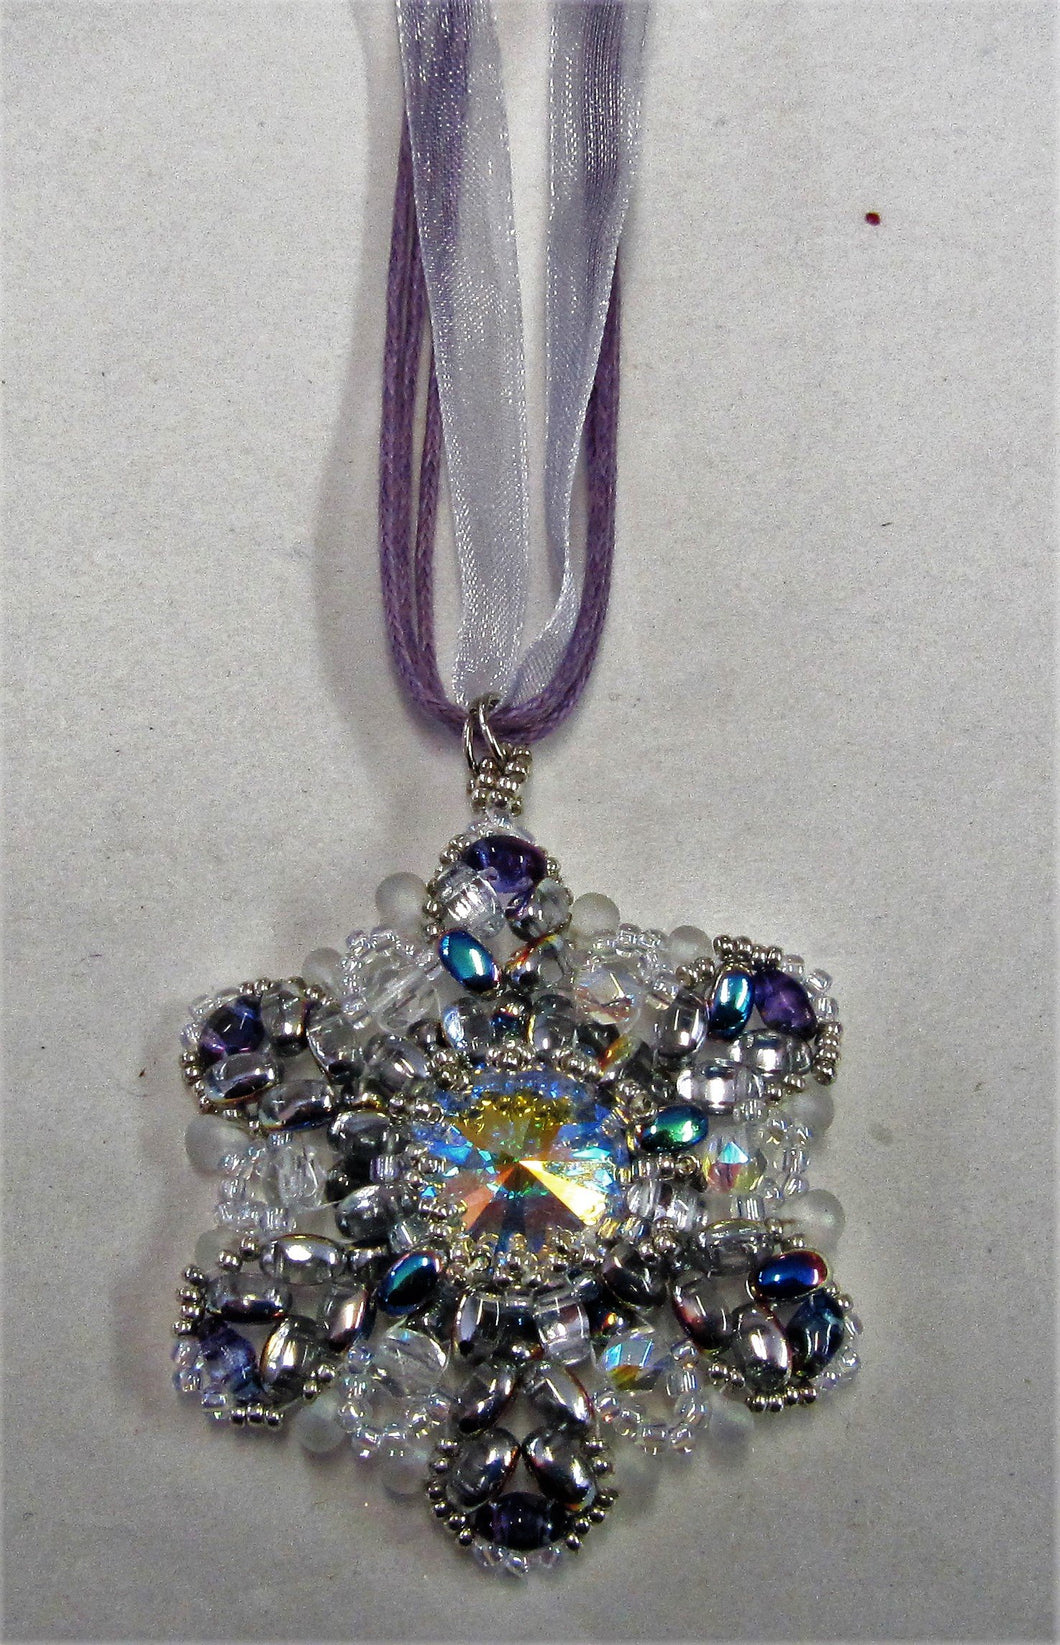 Handcrafted Swarovski Crystal Snowflake Necklace